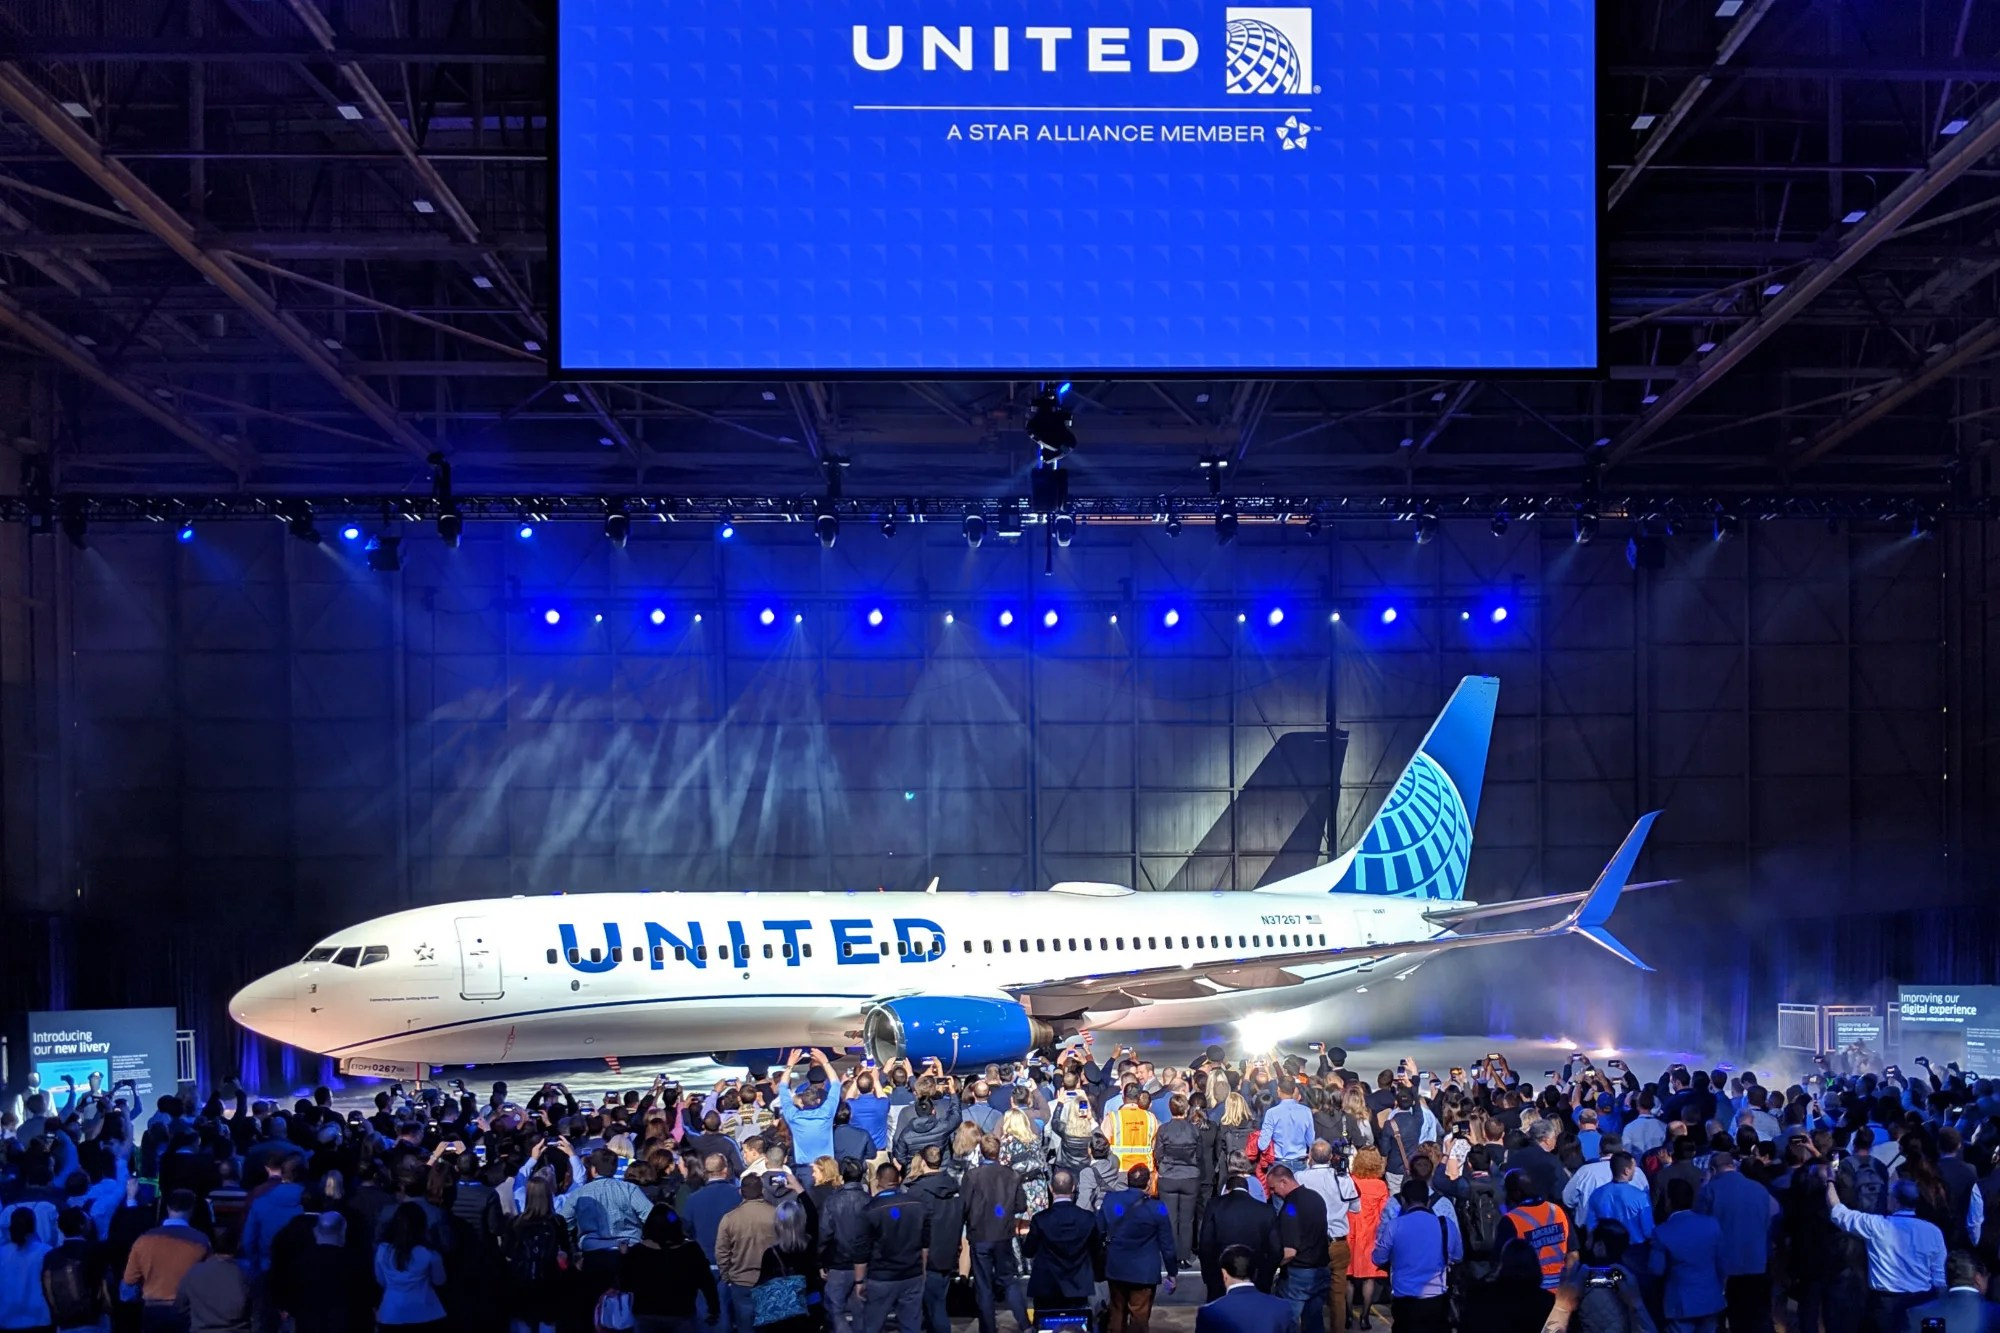 It's Going to Take up to 7 Years to Repaint United's Entire Fleet